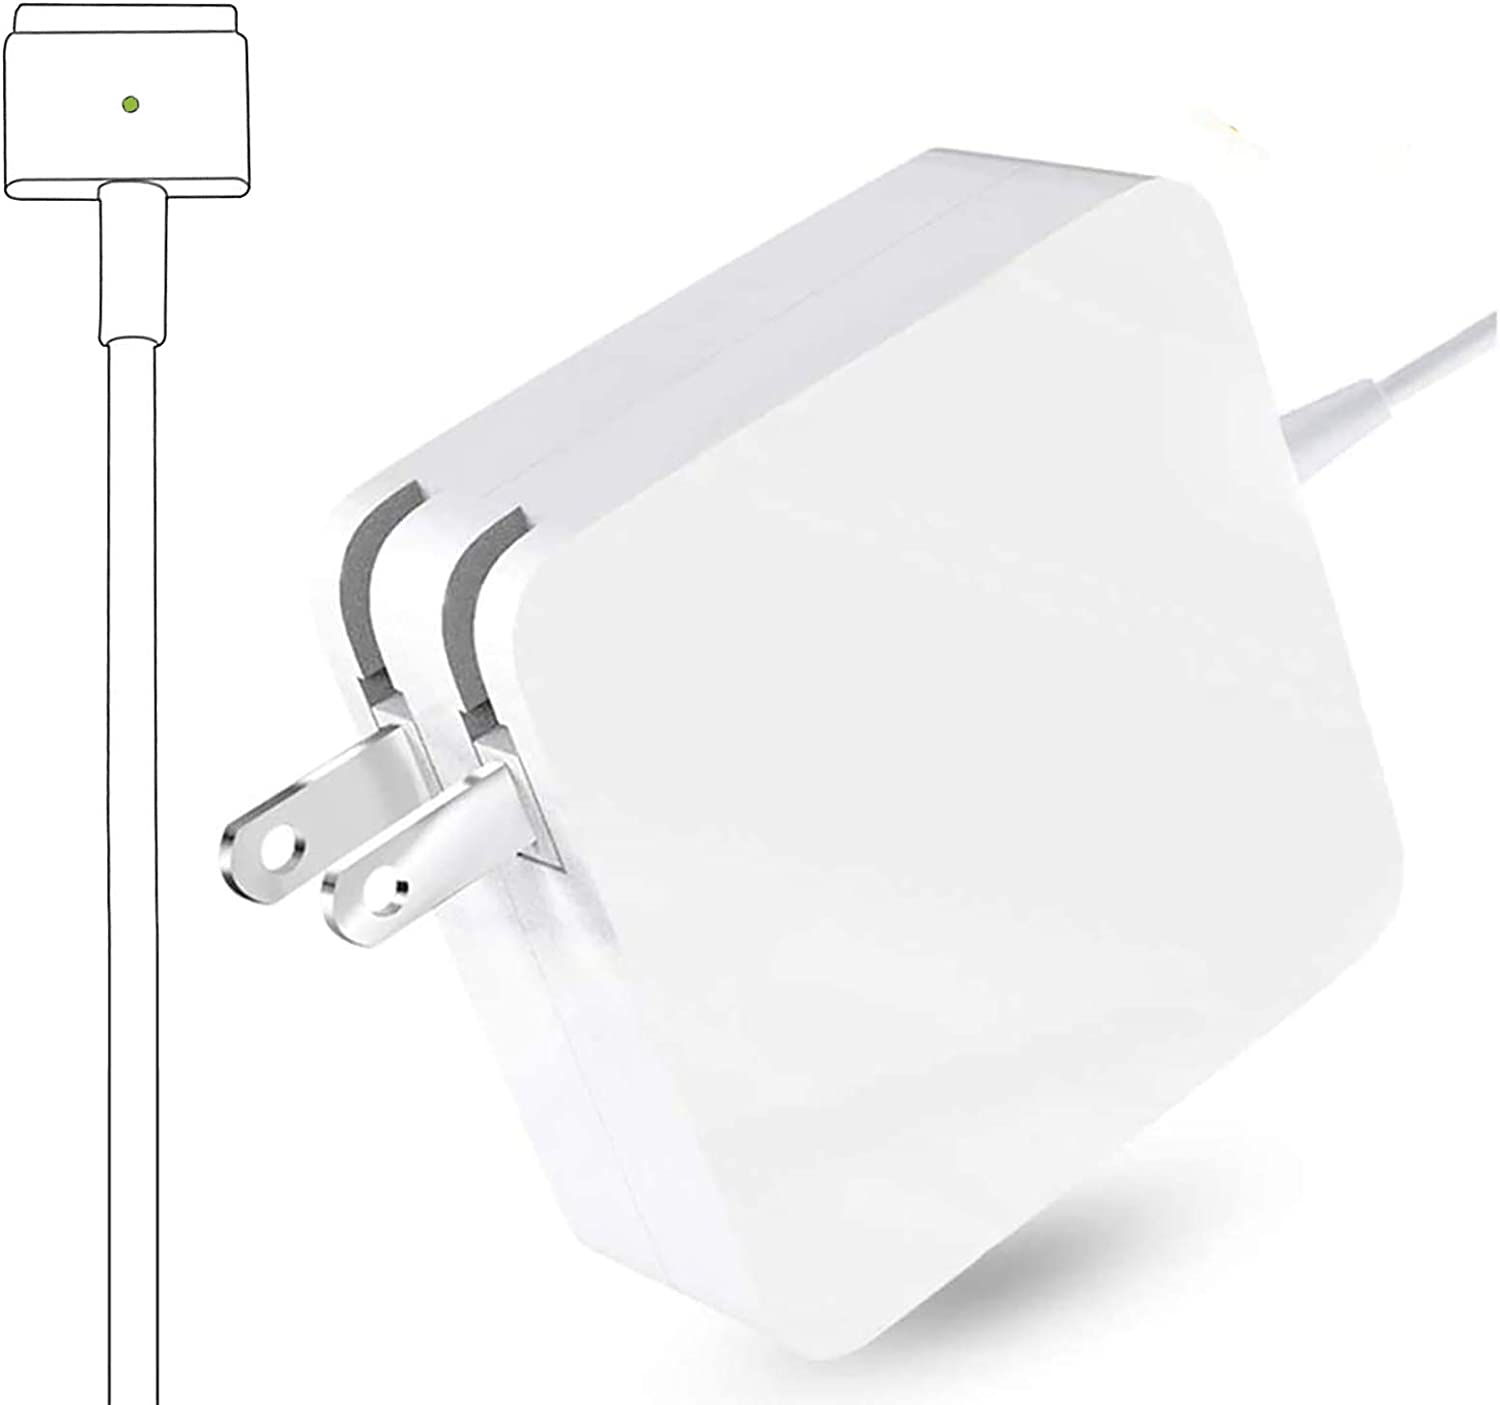 Universal Charger, Replacement 45W Power Adapter Magnetic T-Tip Ac Charger for Mac Book Air 11-inch and 13-inch